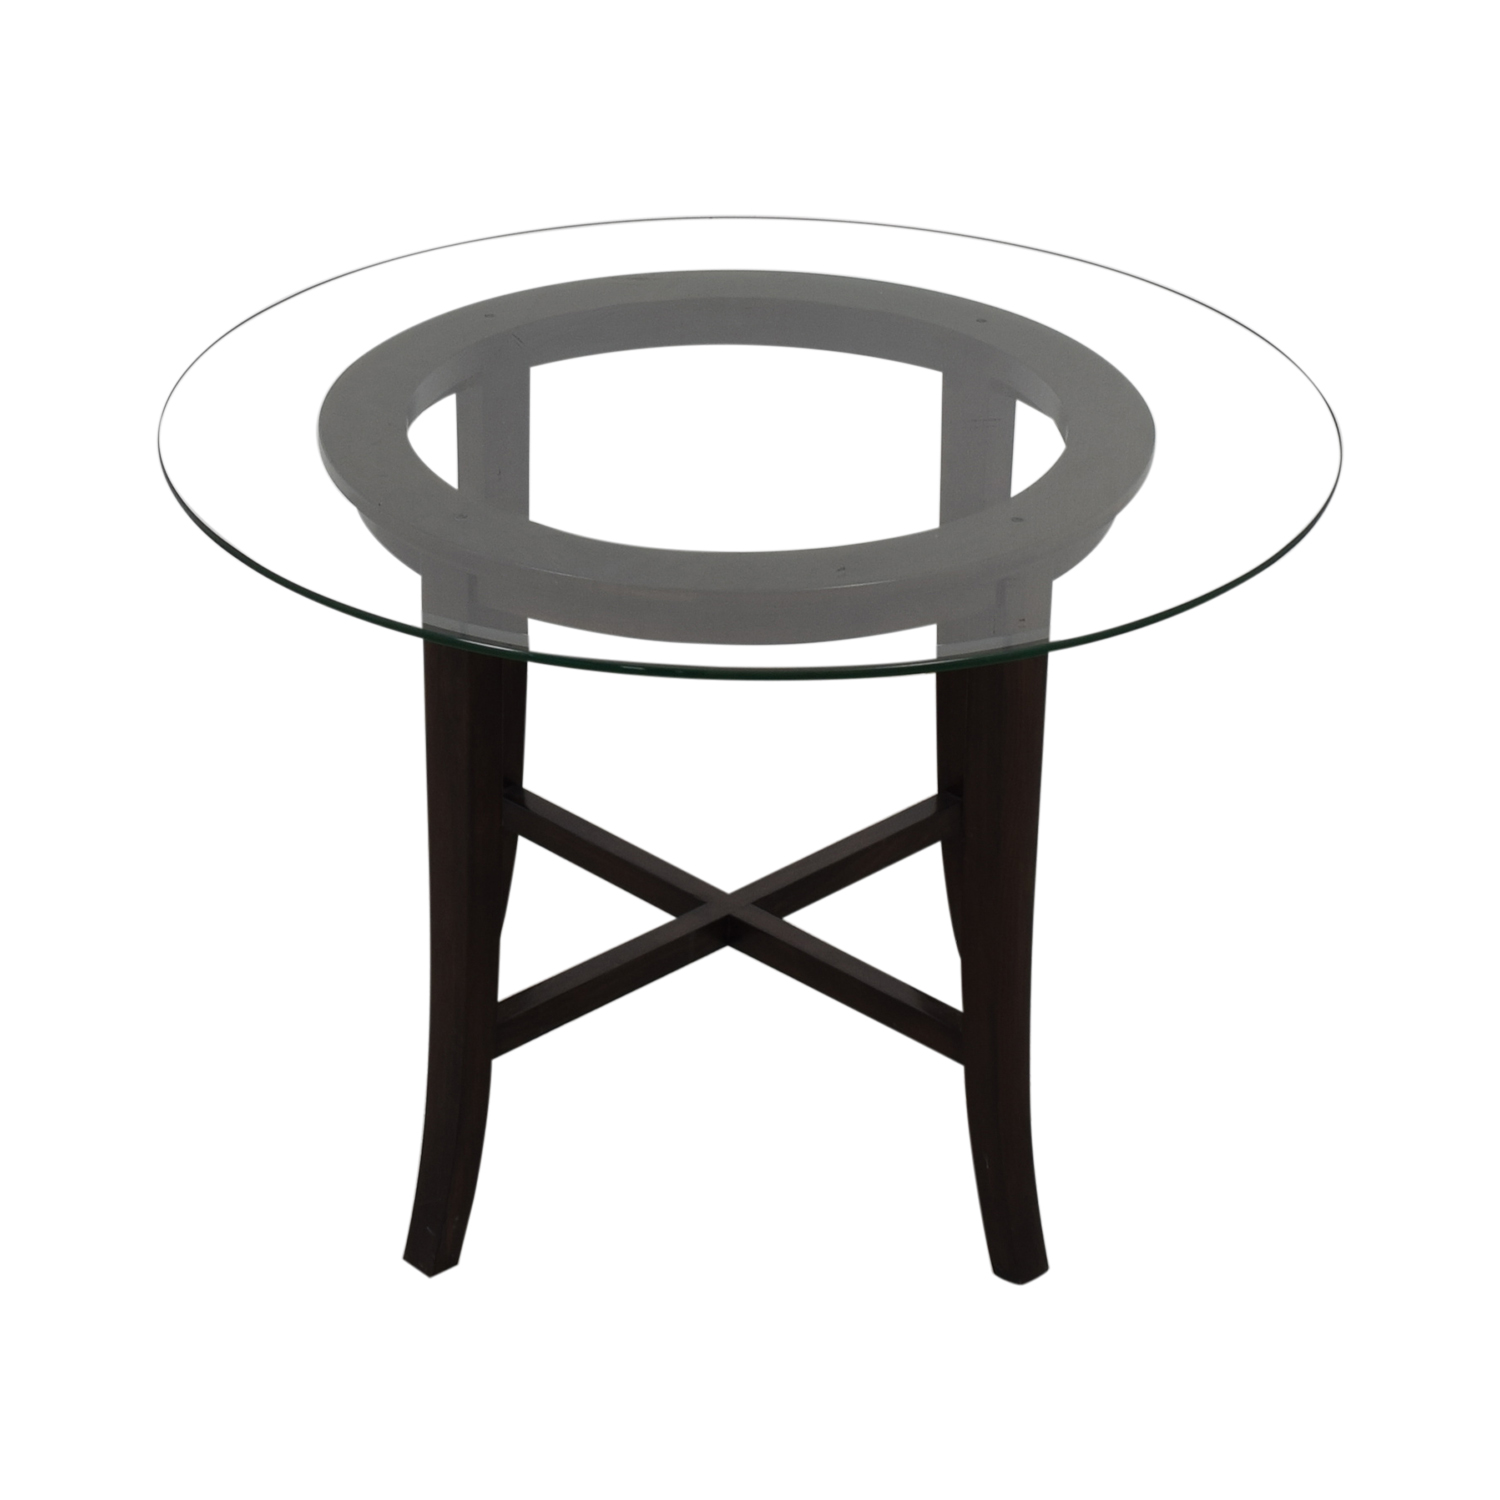 Crate Barrel Halo Gl And Wood Dining Table